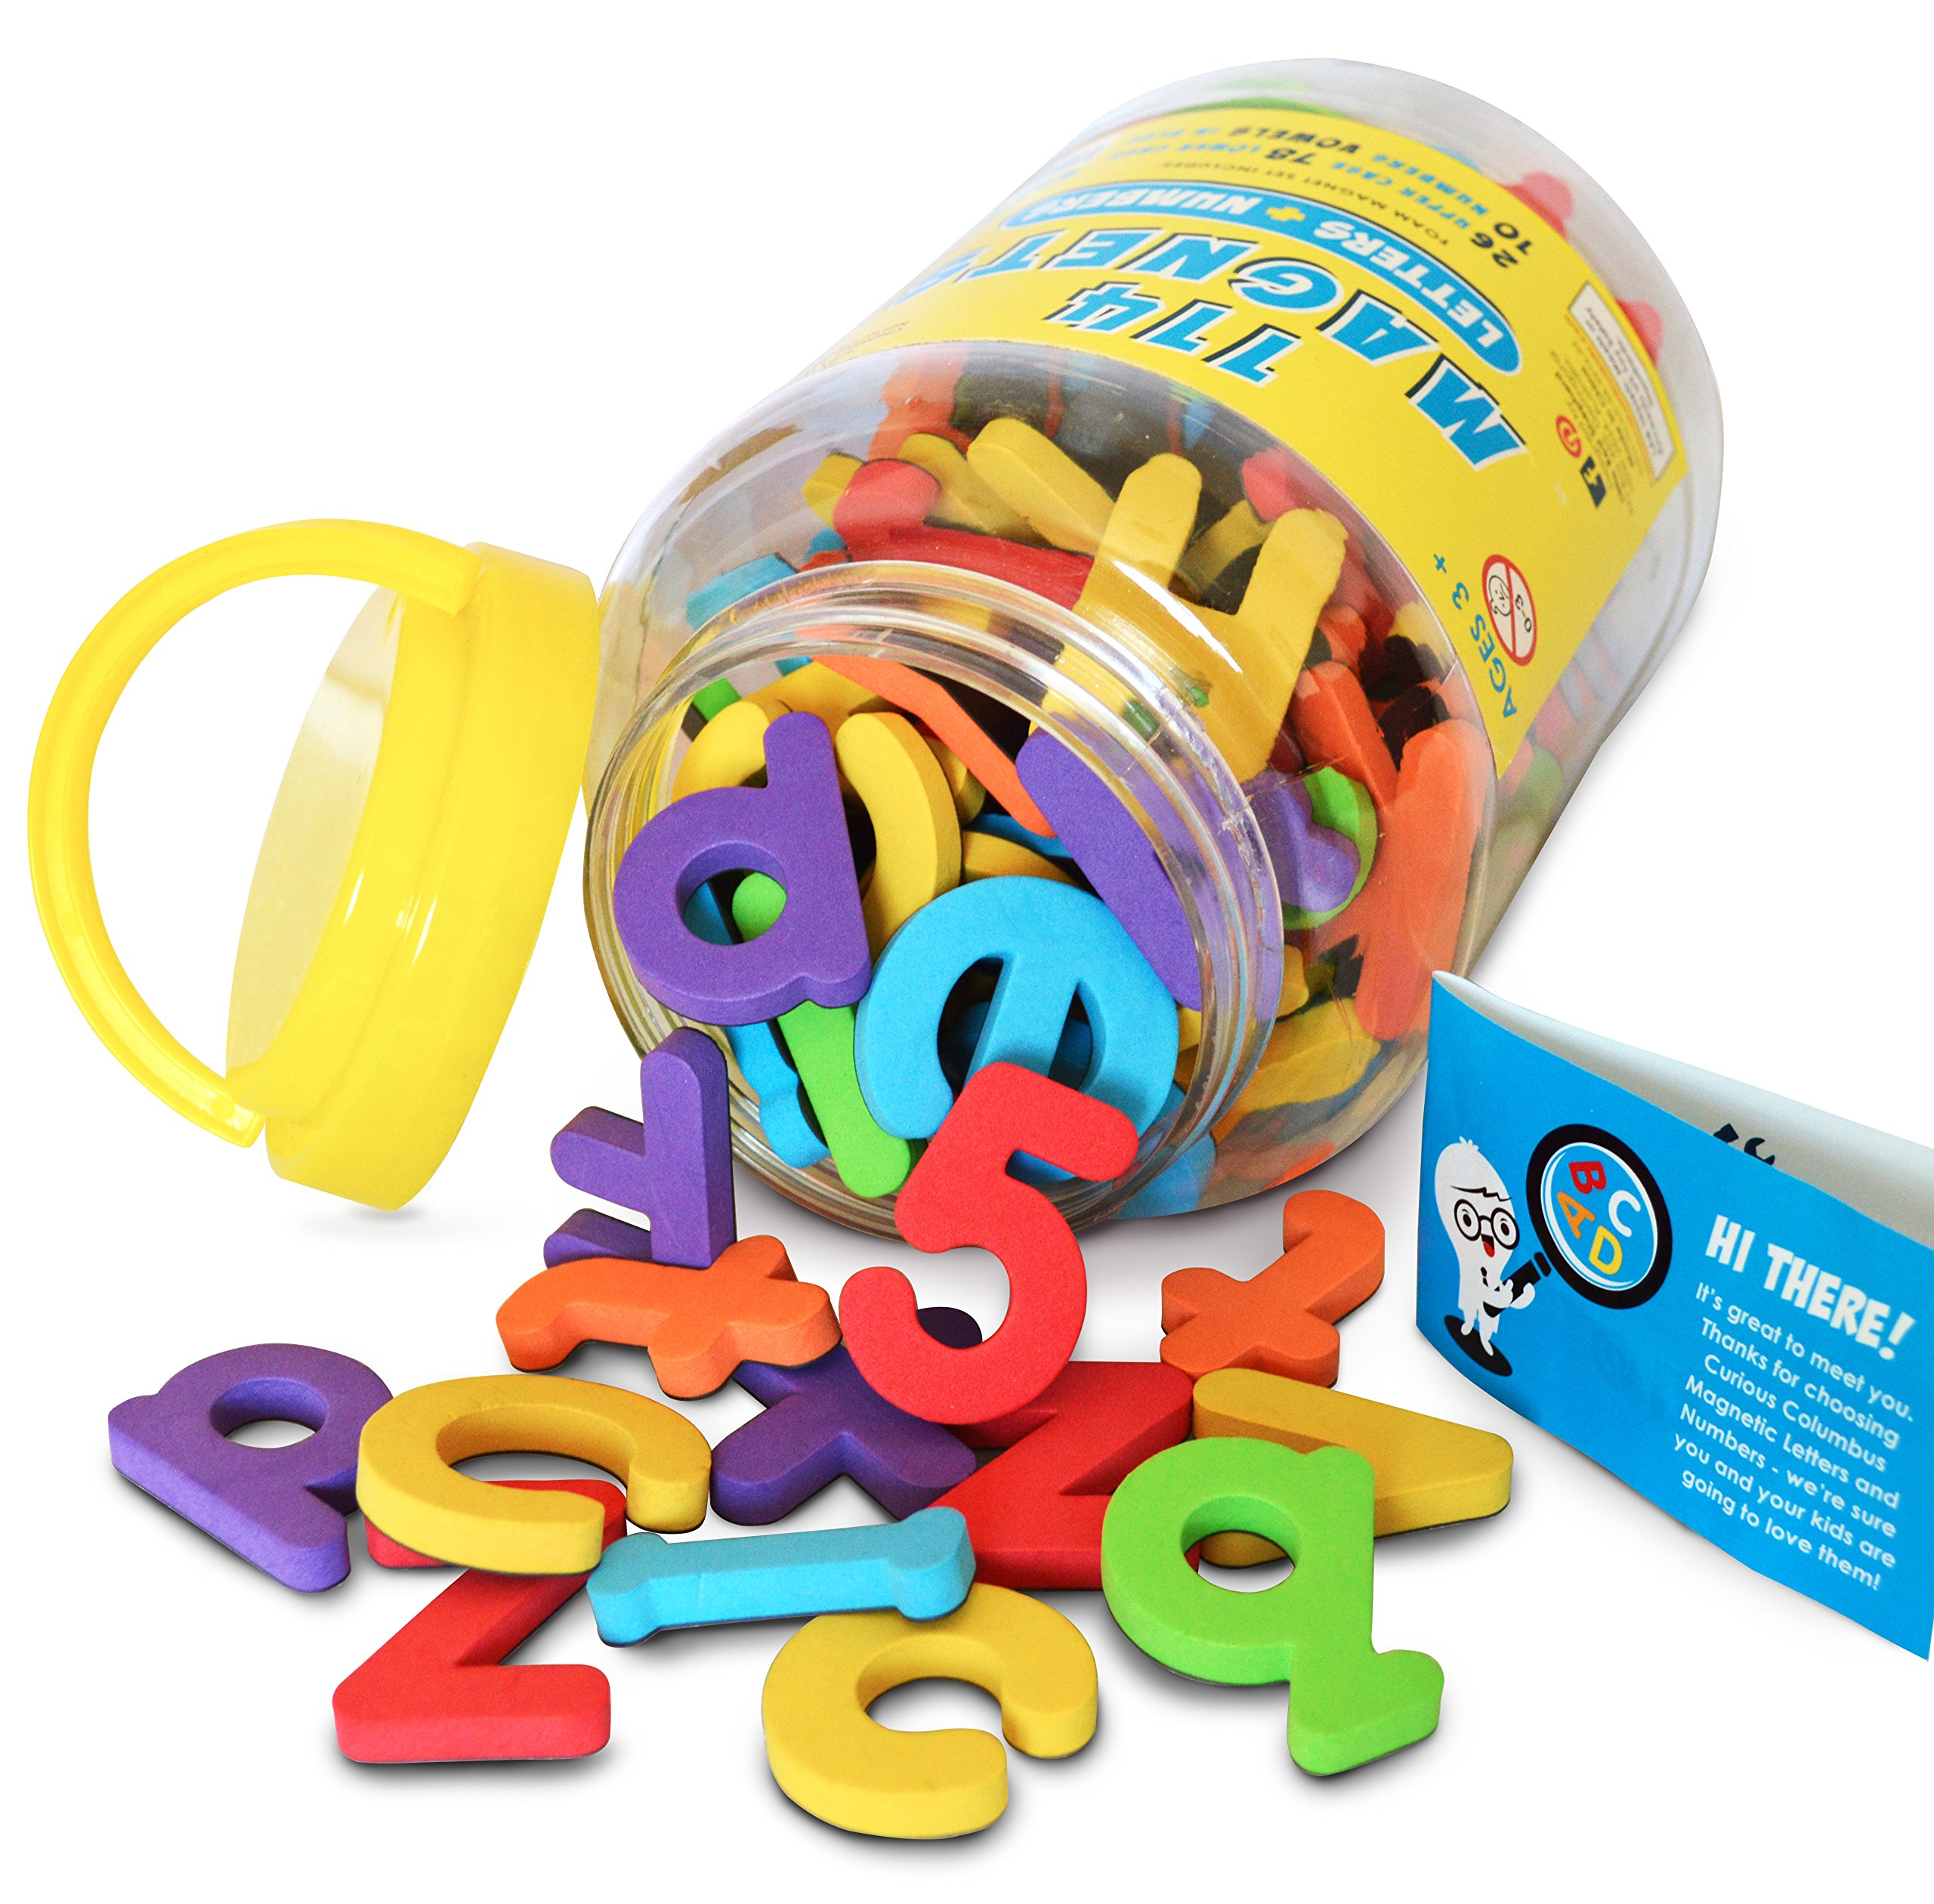 Magnetic Letters And Numbers By Curious Columbus. Set Of 114 Premium Quality .. 14